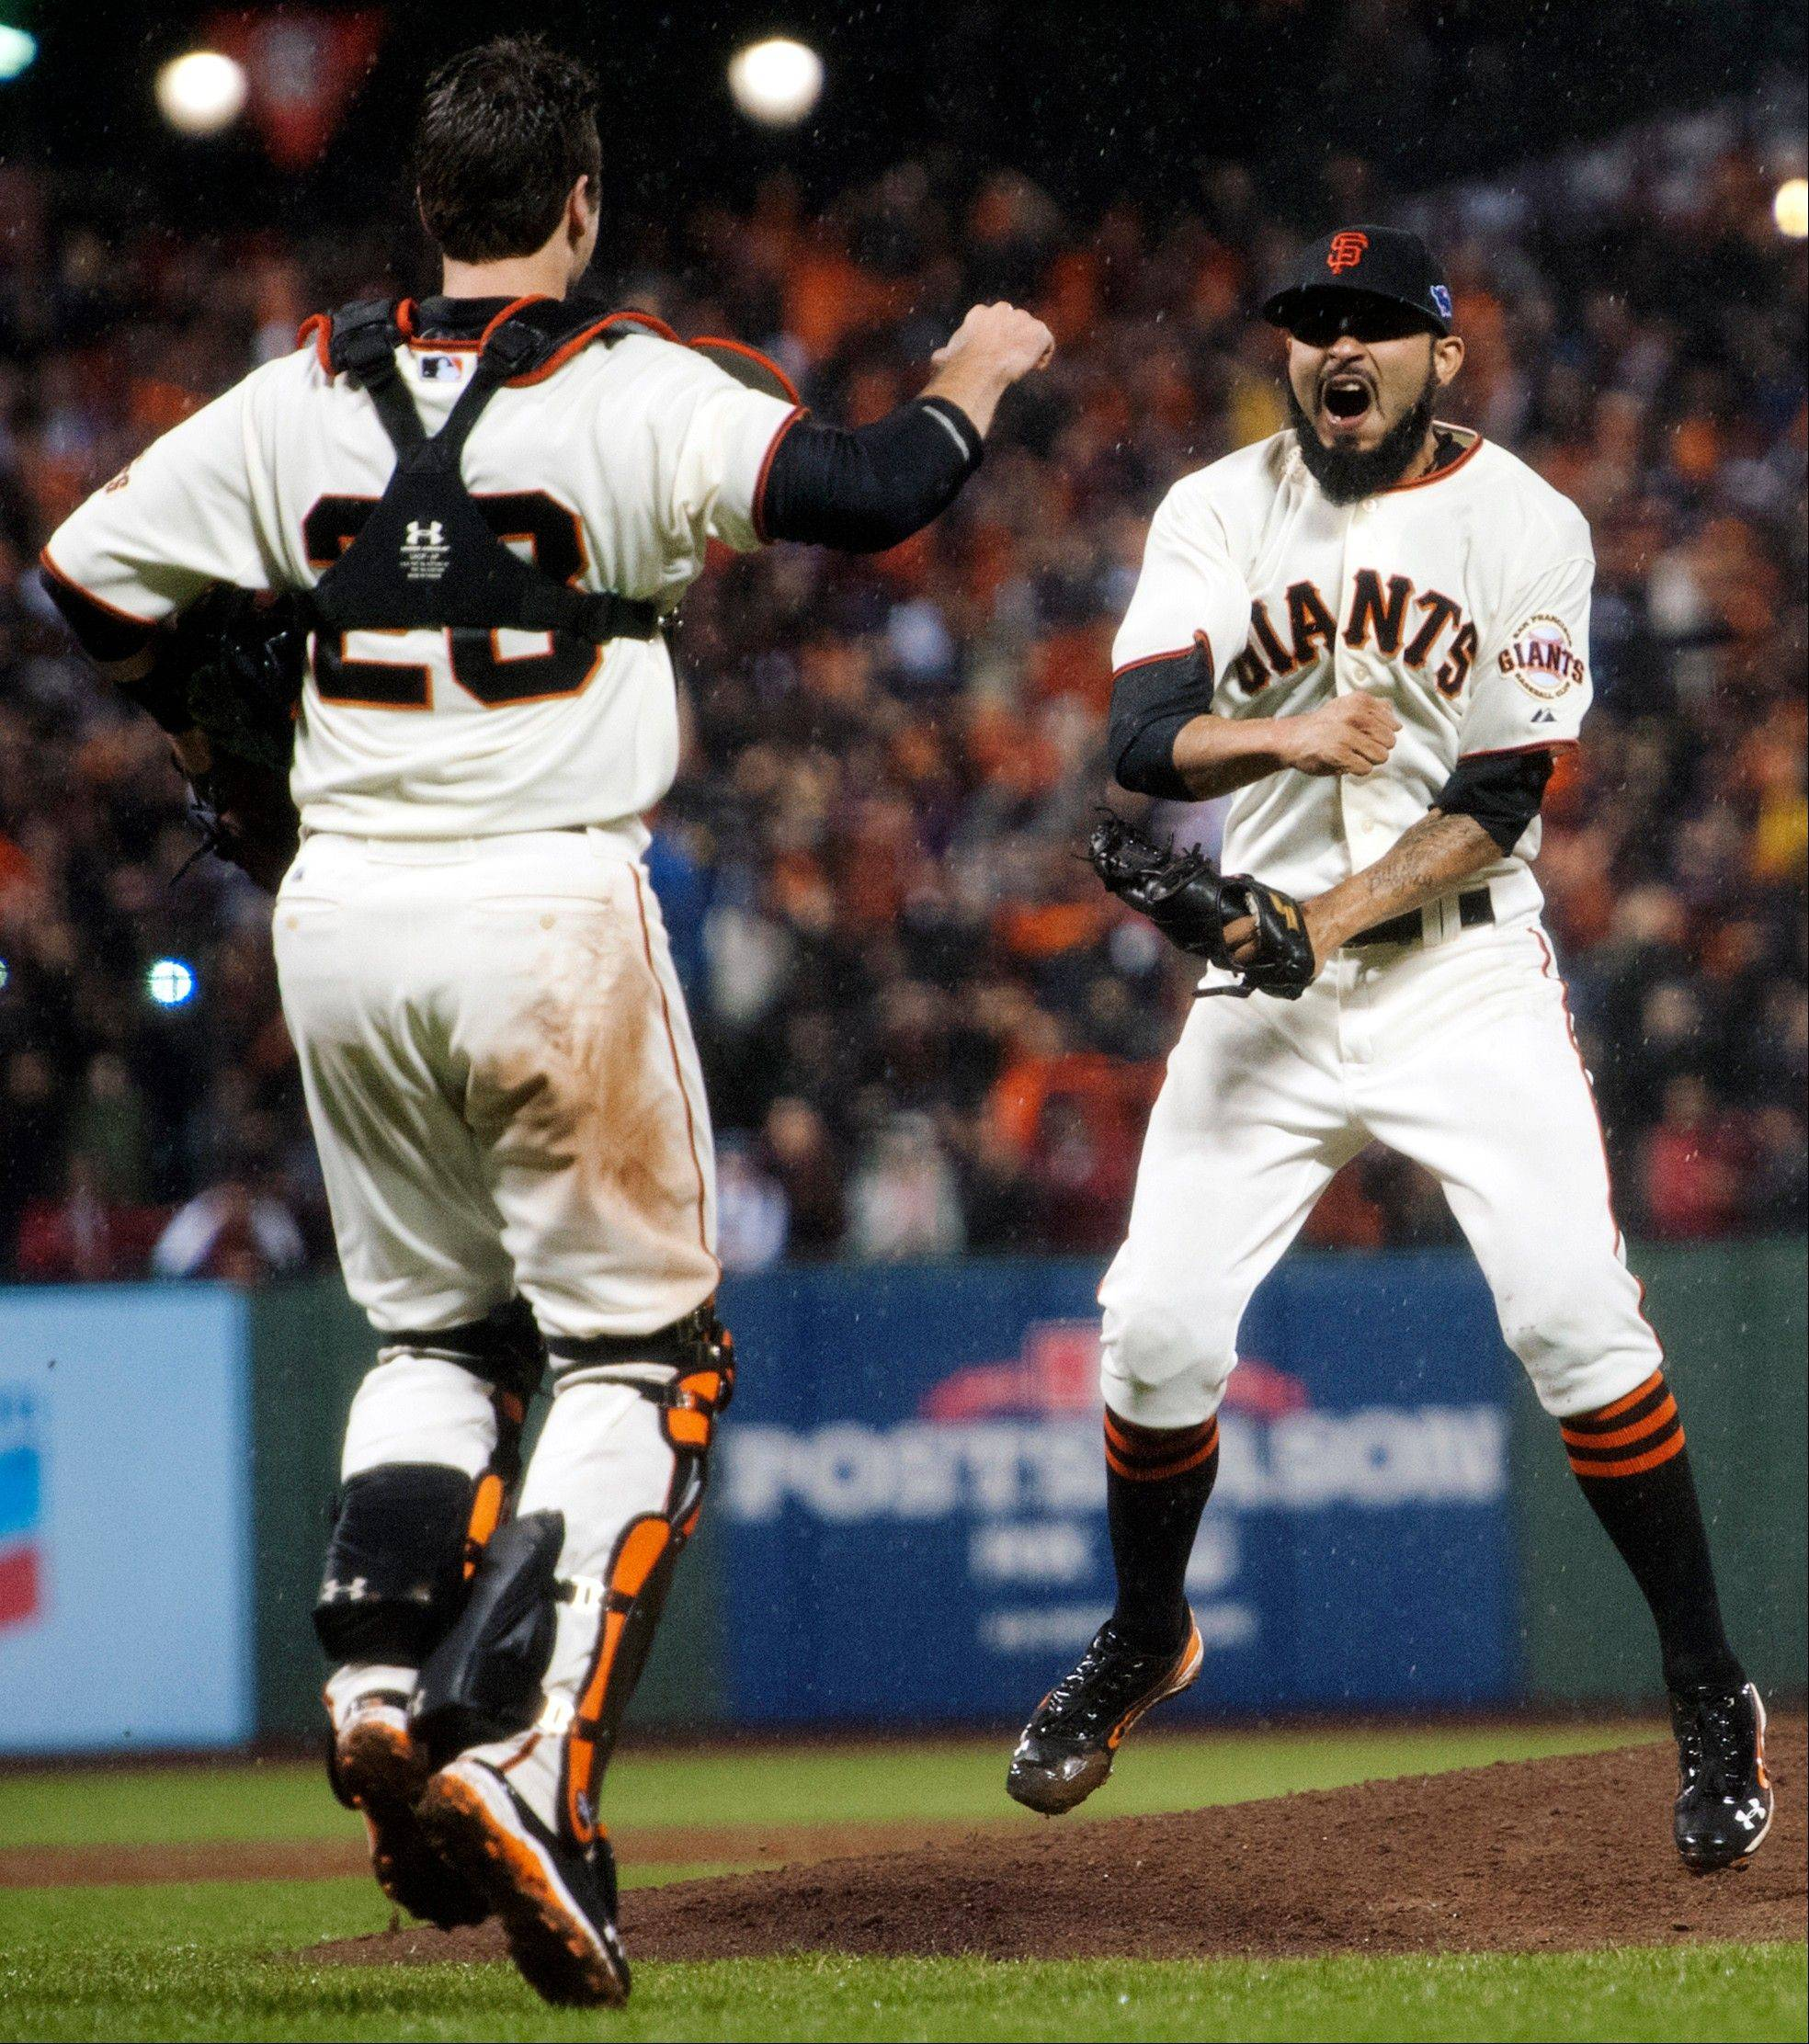 Giants headed back to World Series